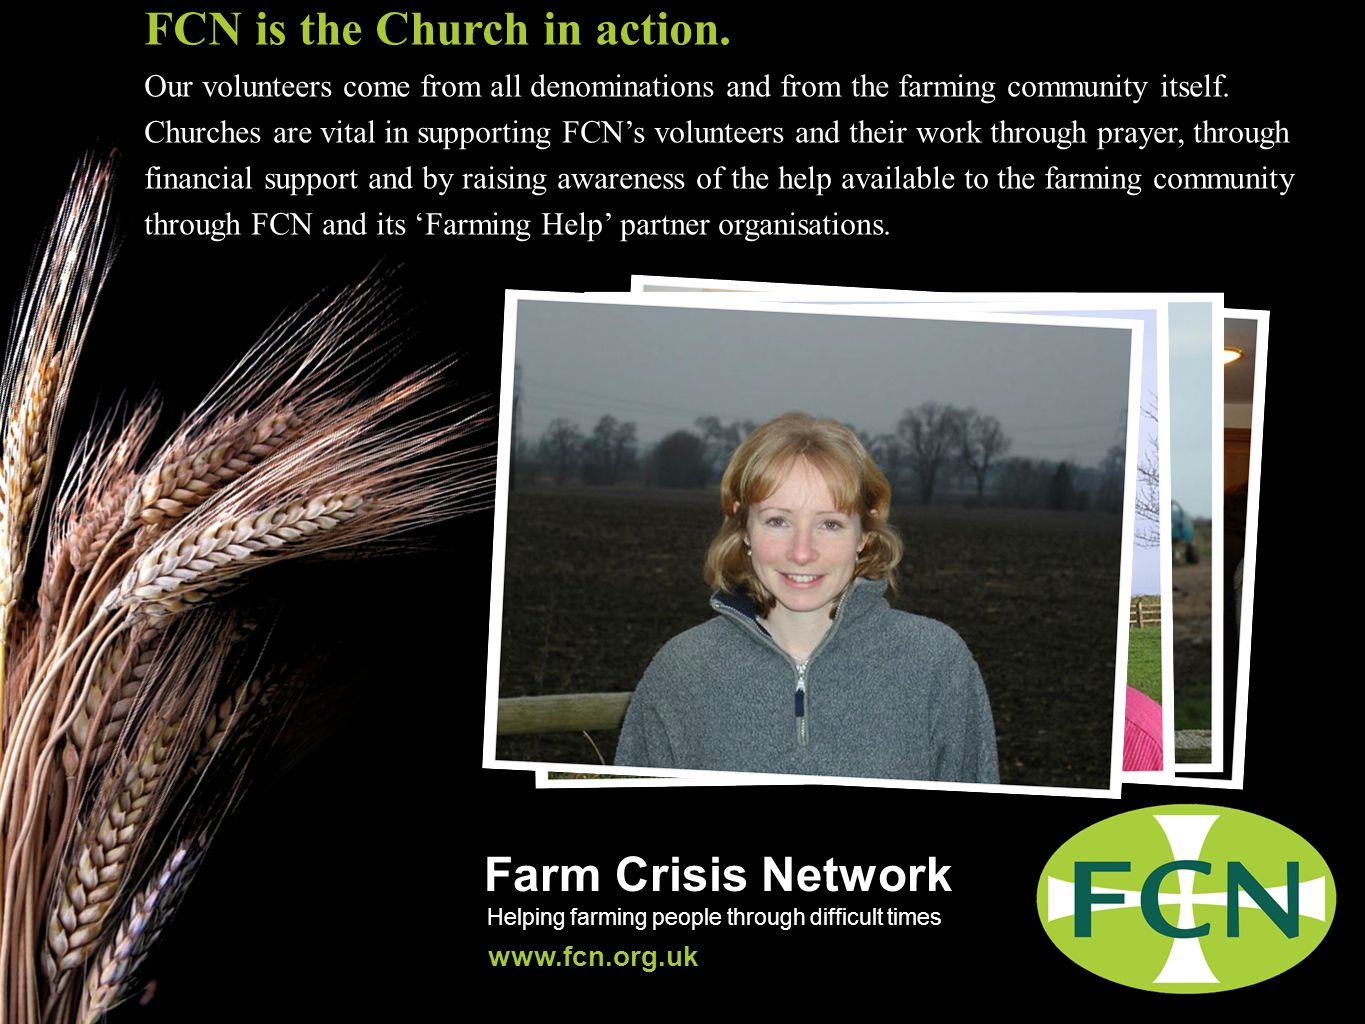 Farm Crisis Network Helping farming people through difficult times www.fcn.org.uk FCN is the Church in action.